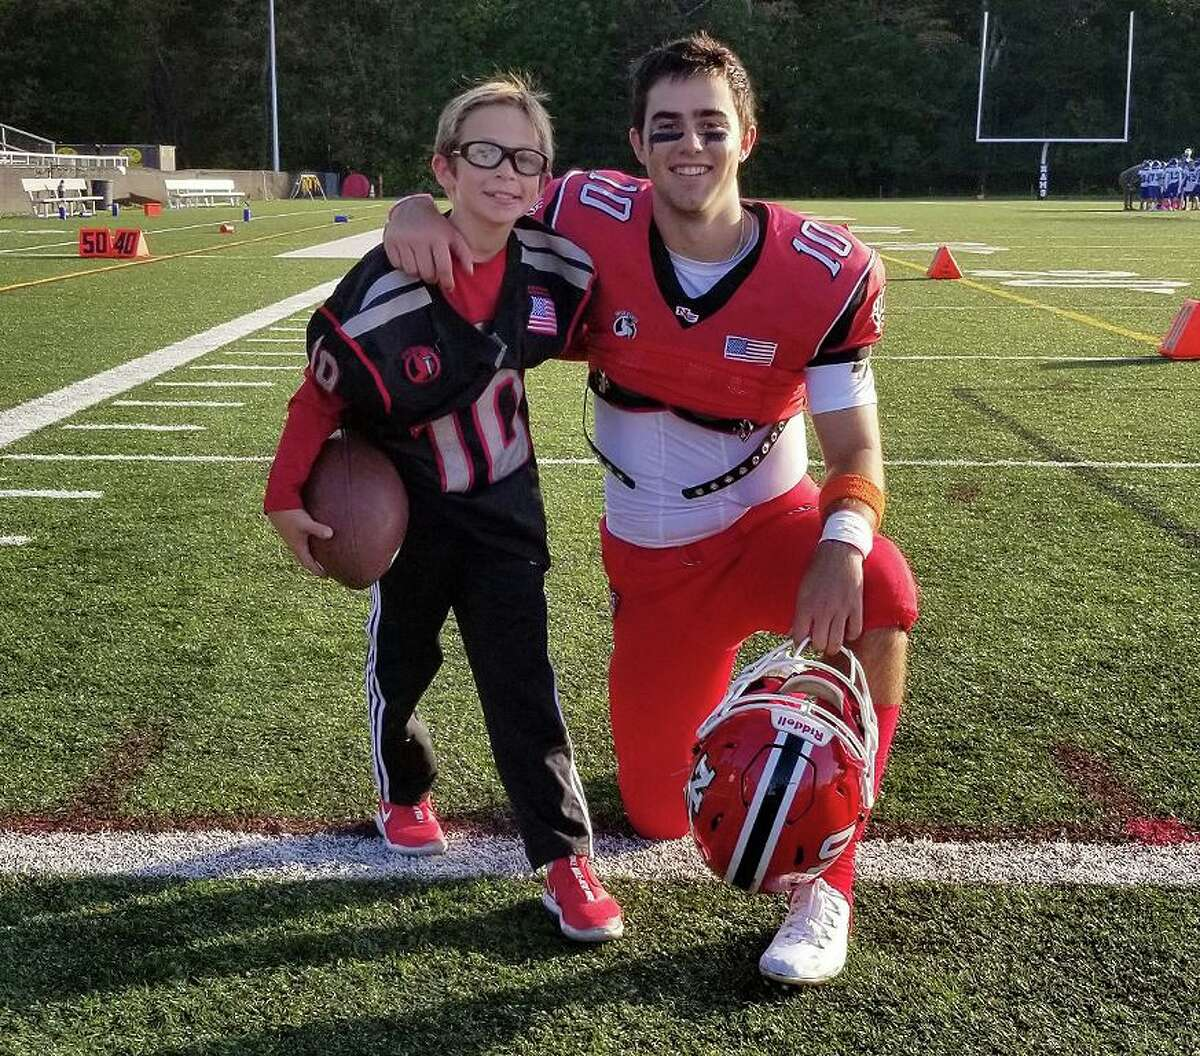 Ryan Berg, 8, and New Canaan senior Drew Pyne at Dunning Field for the Rams' homecoming football game on Saturday, Oct. 26, 2019.